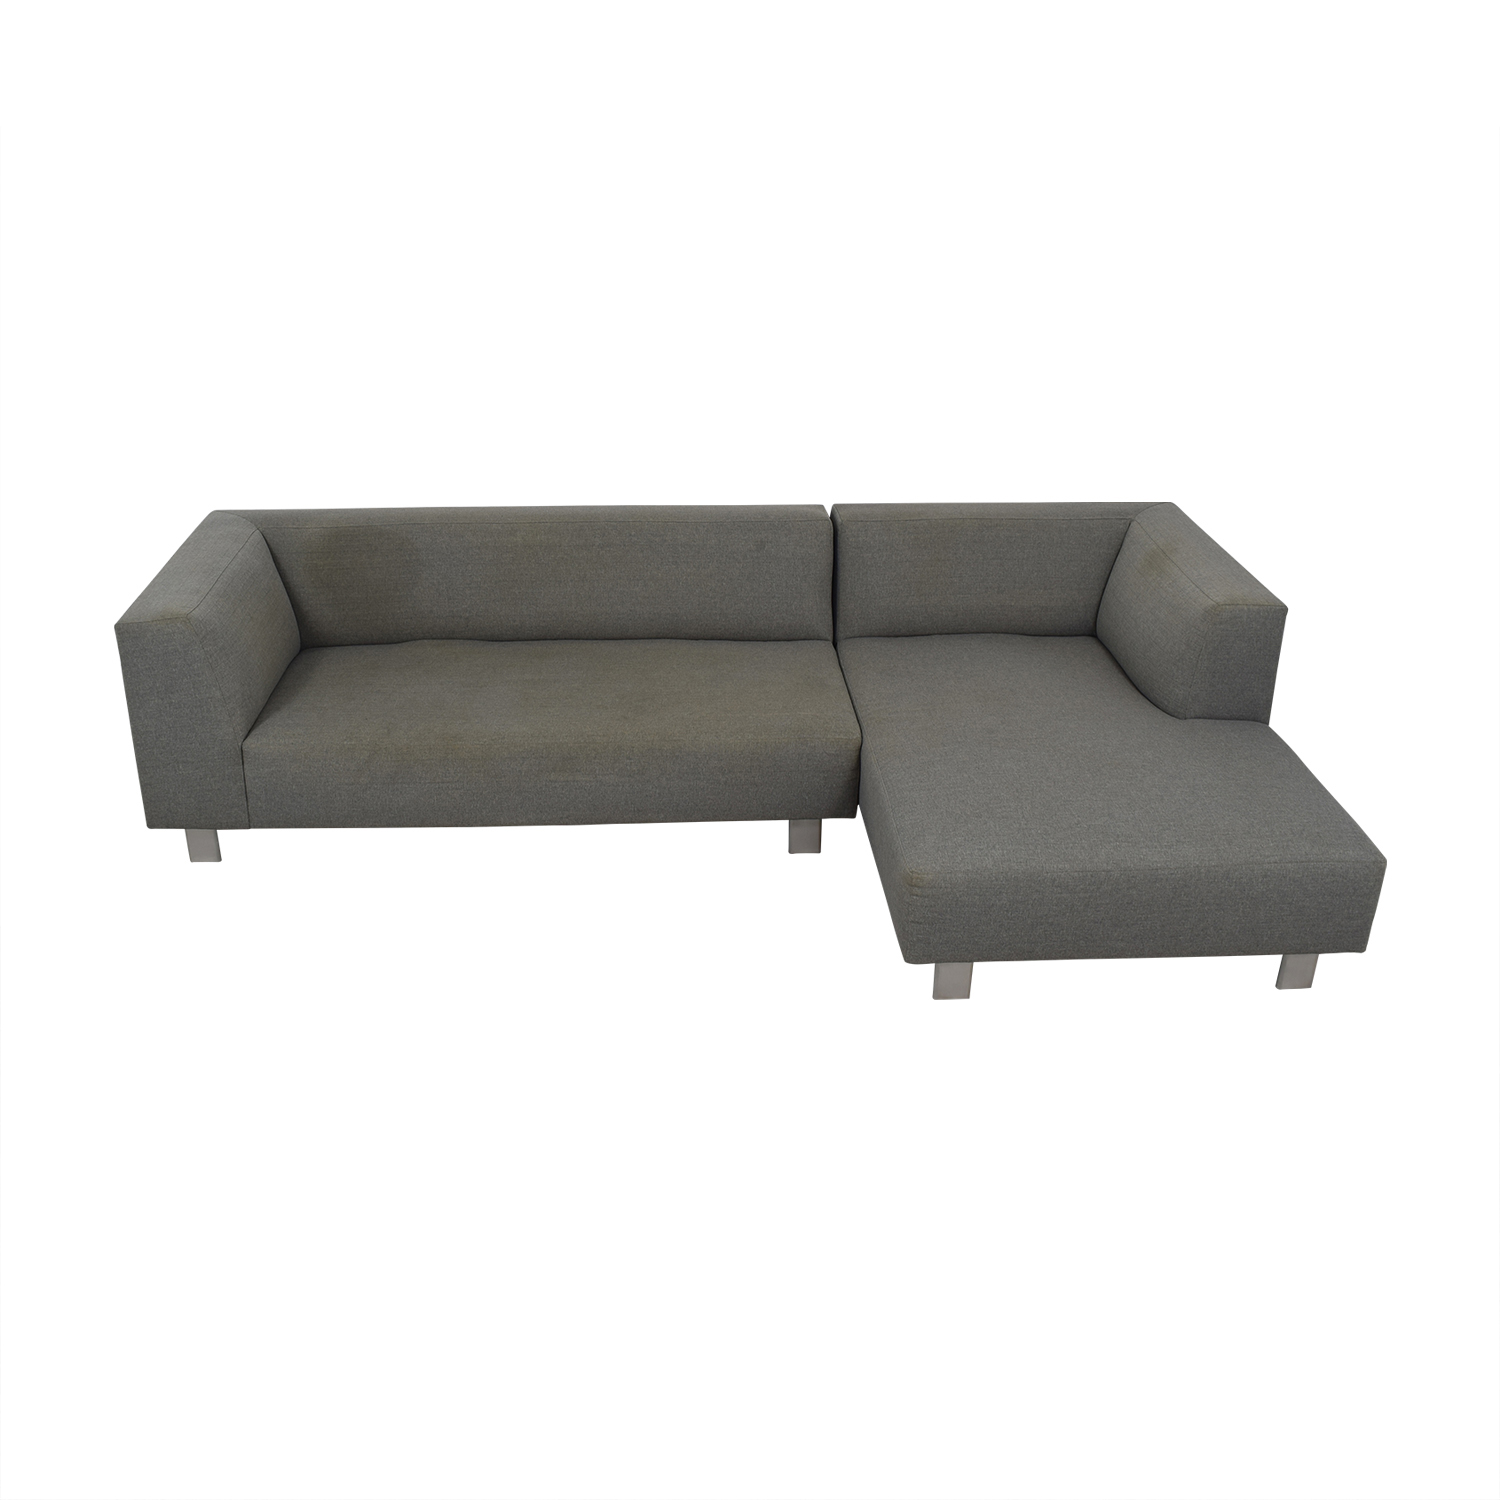 Room & Board Room & Board Grey Chaise Sectional for sale